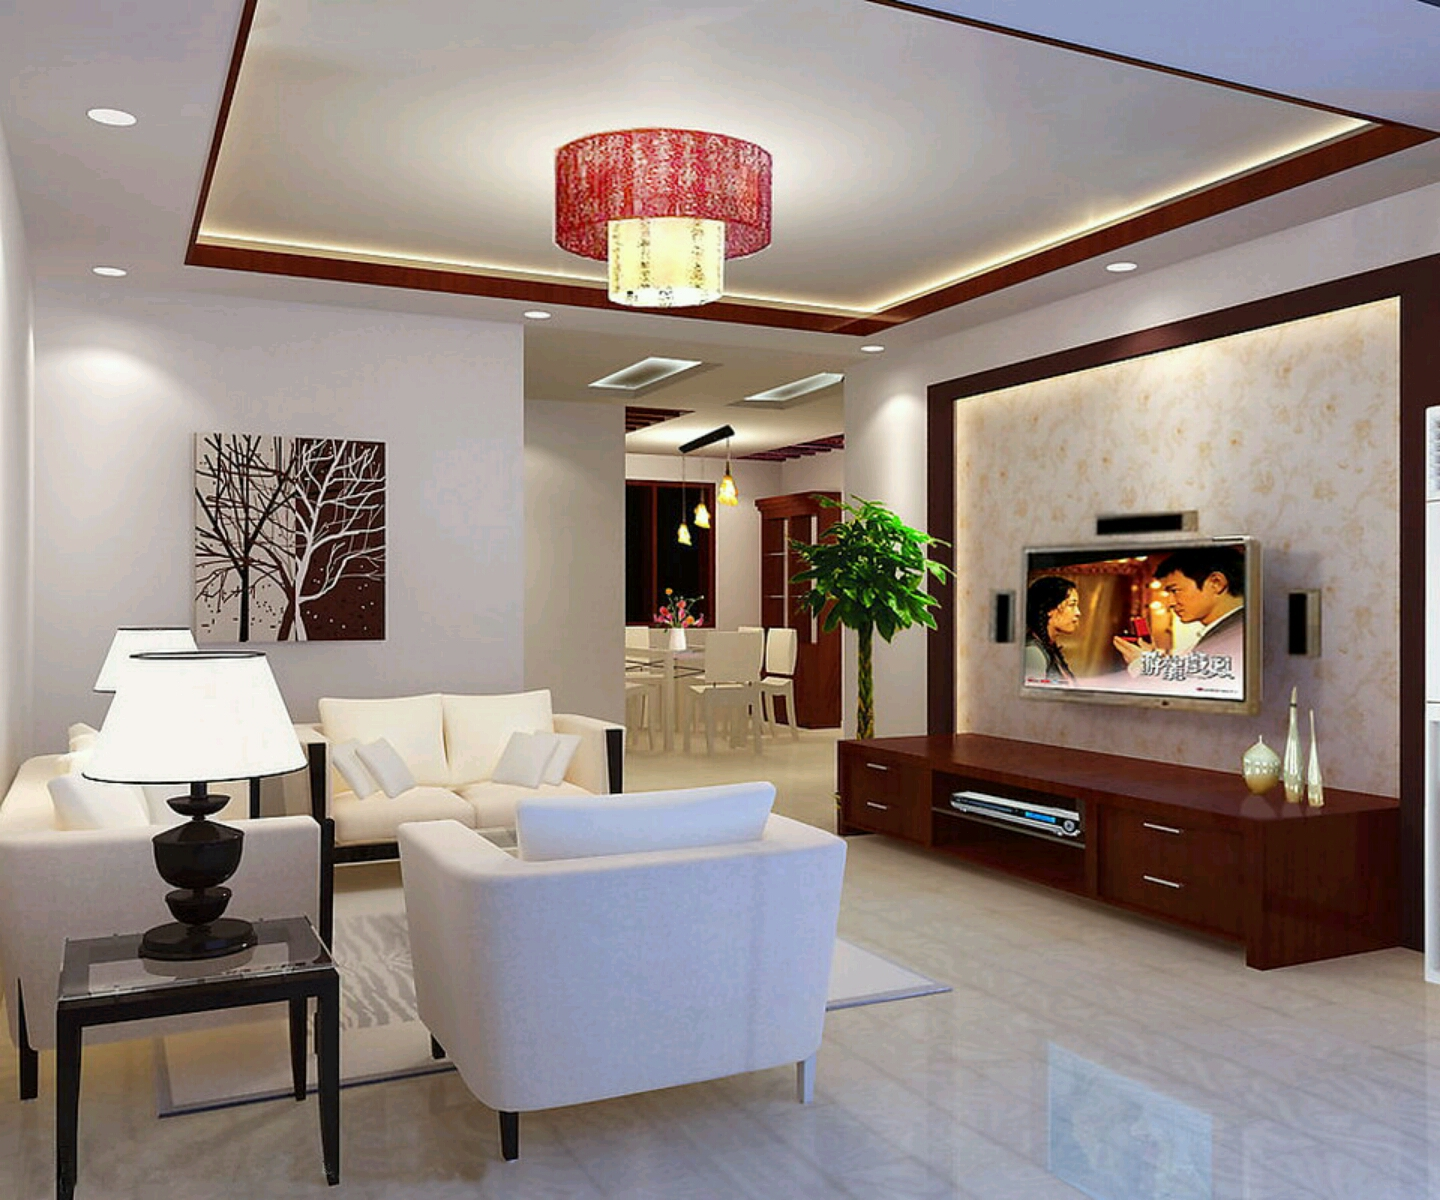 New home designs latest modern interior decoration for New modern house interior design